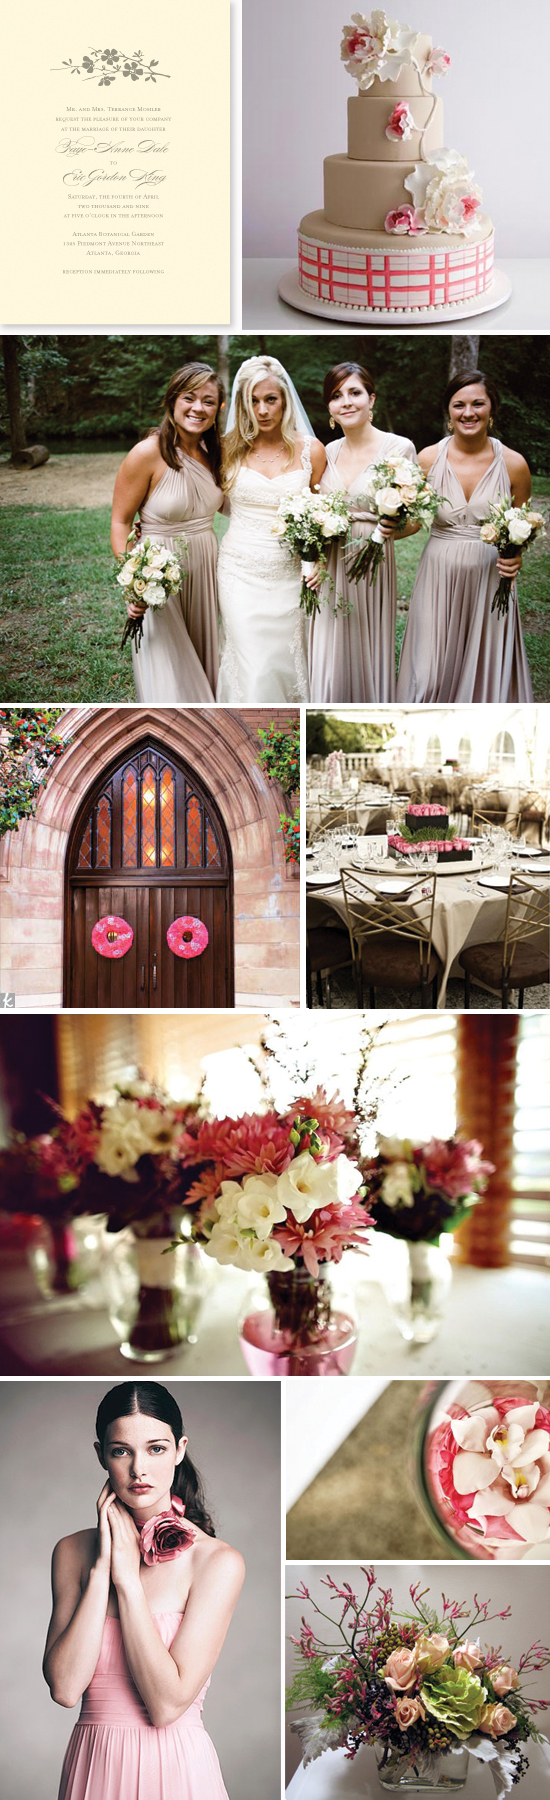 Wedding Inspiration Board - pink and taupe